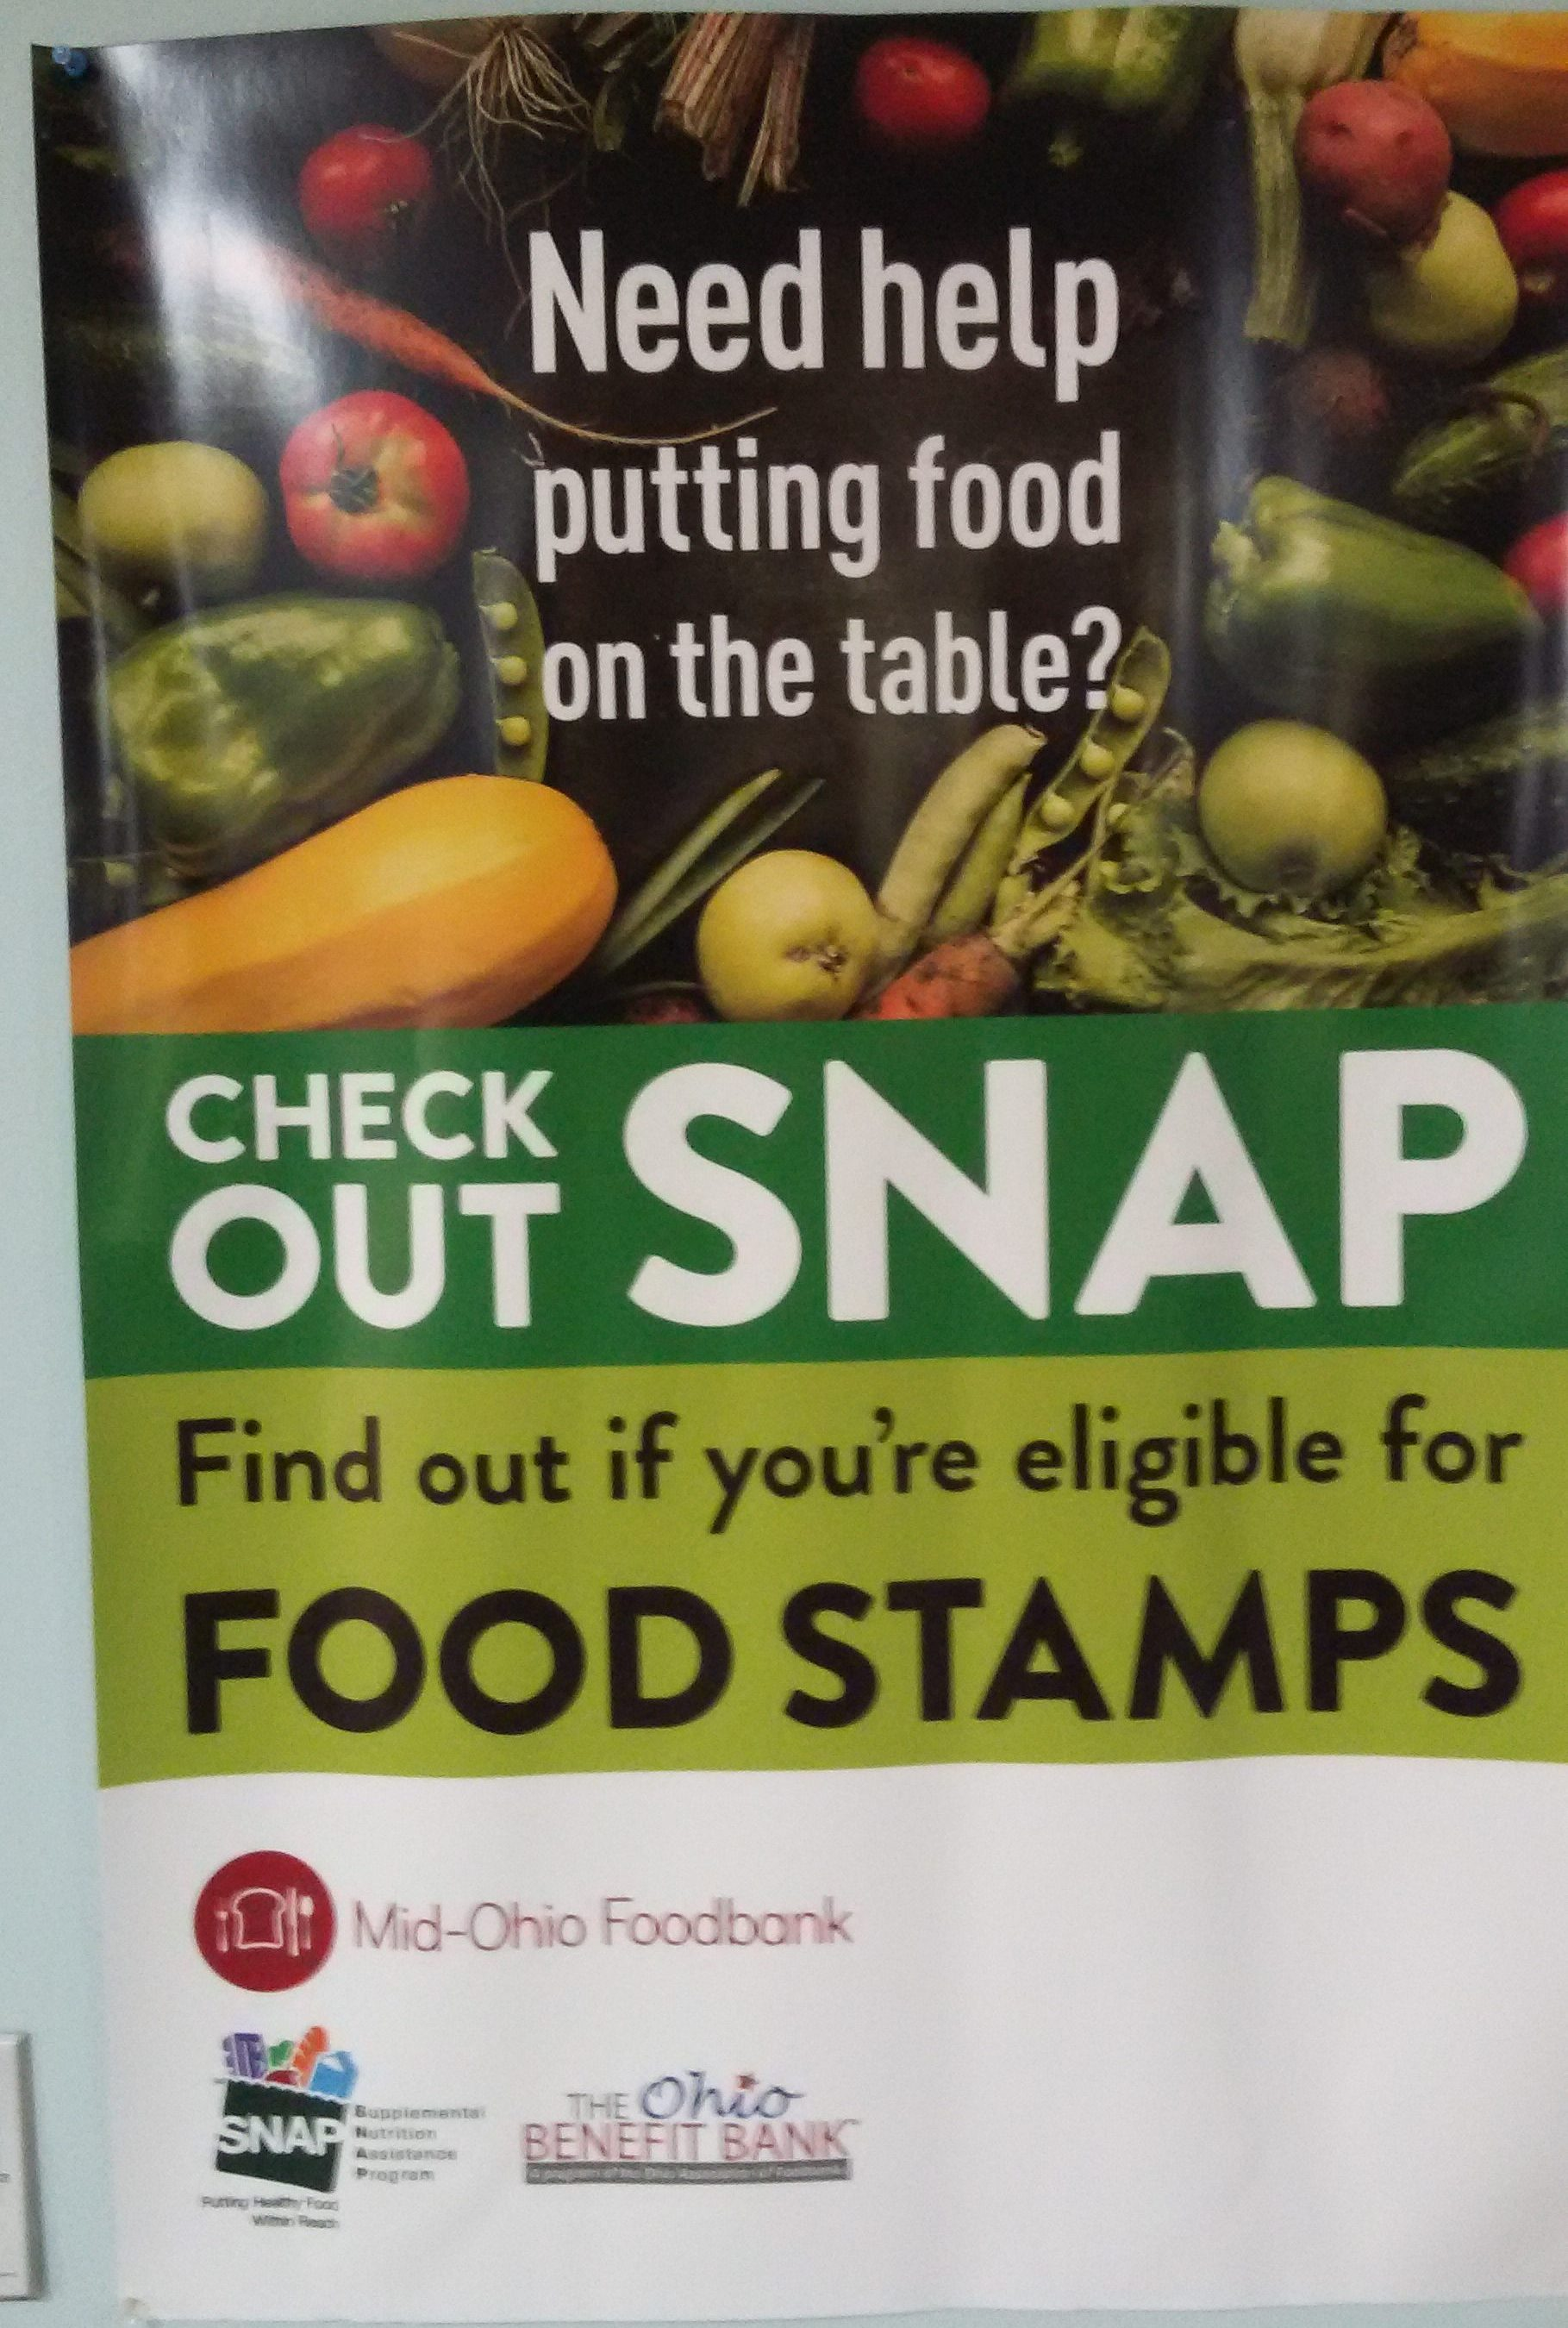 Food stampsohio benefits bank nnemap oh snap check in with ohio benefits bank representatives to review your eligibility for food stamp snap benefits and other federal programs ccuart Images